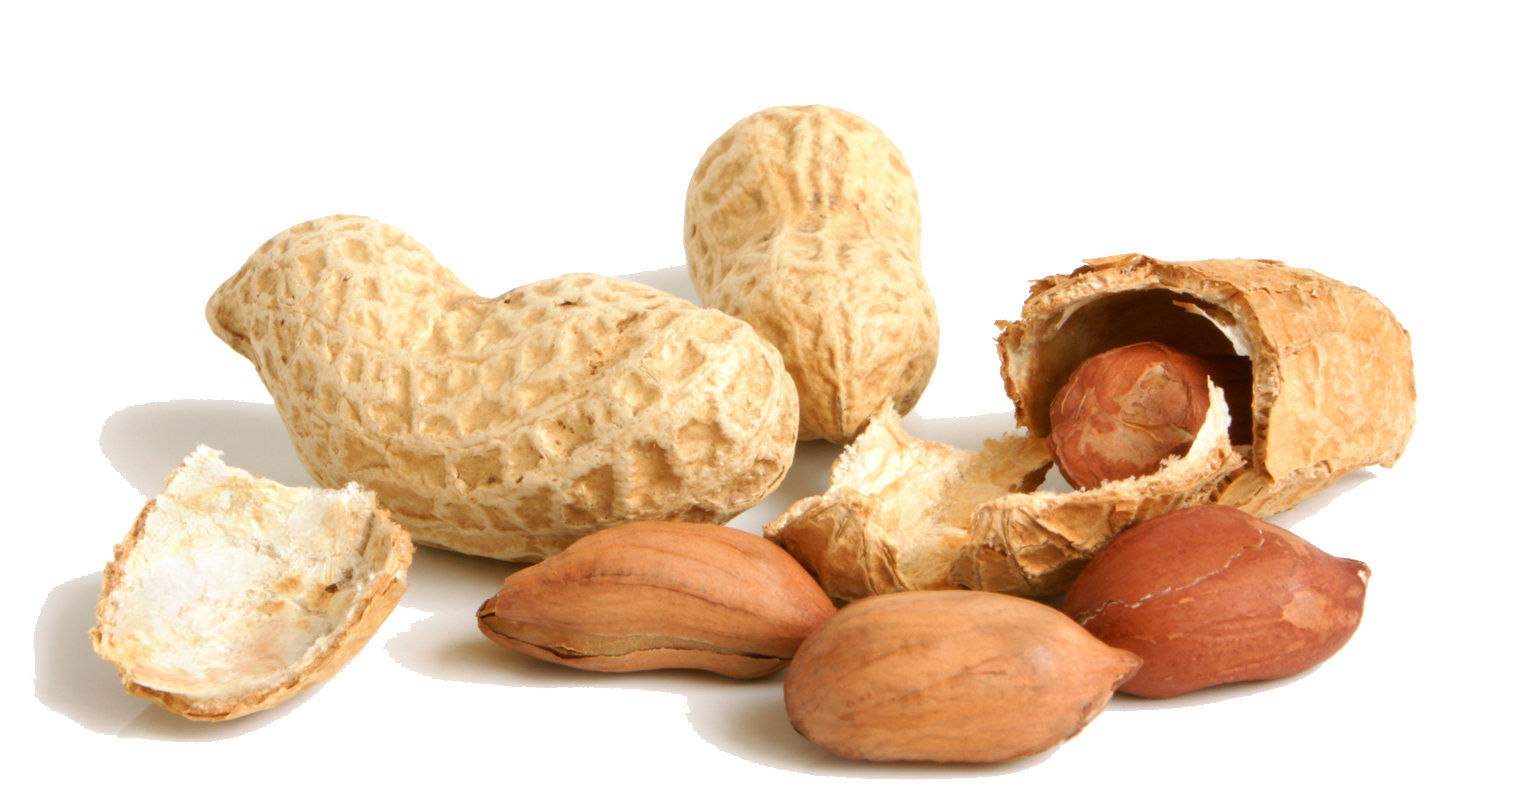 Transparent peanut file. Png images all